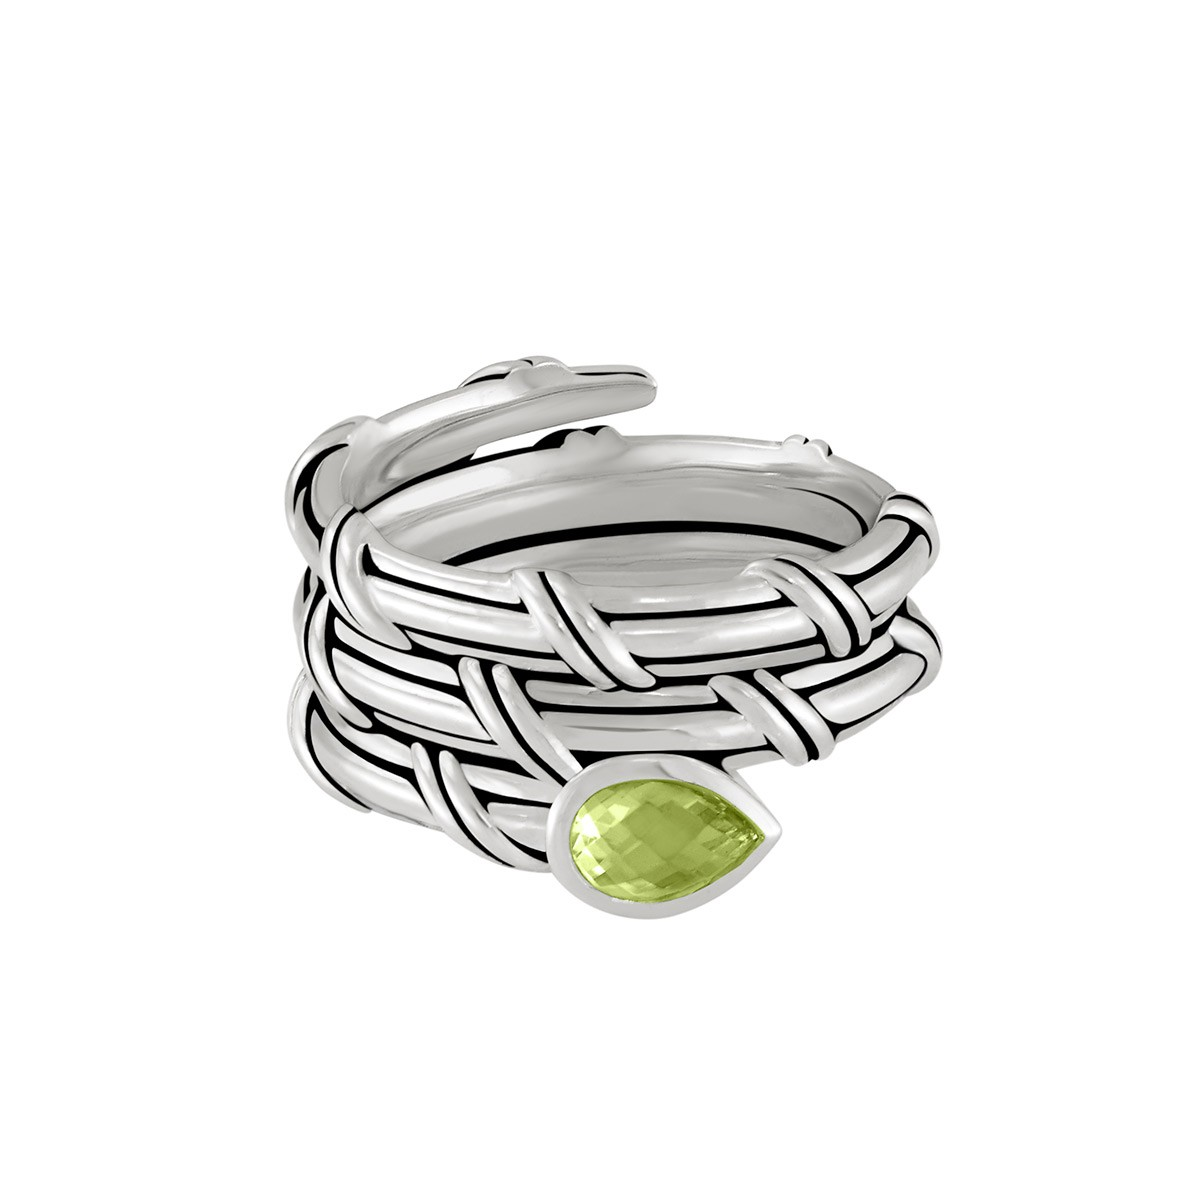 Signature Classic Wrap Ring with peridot in sterling silver